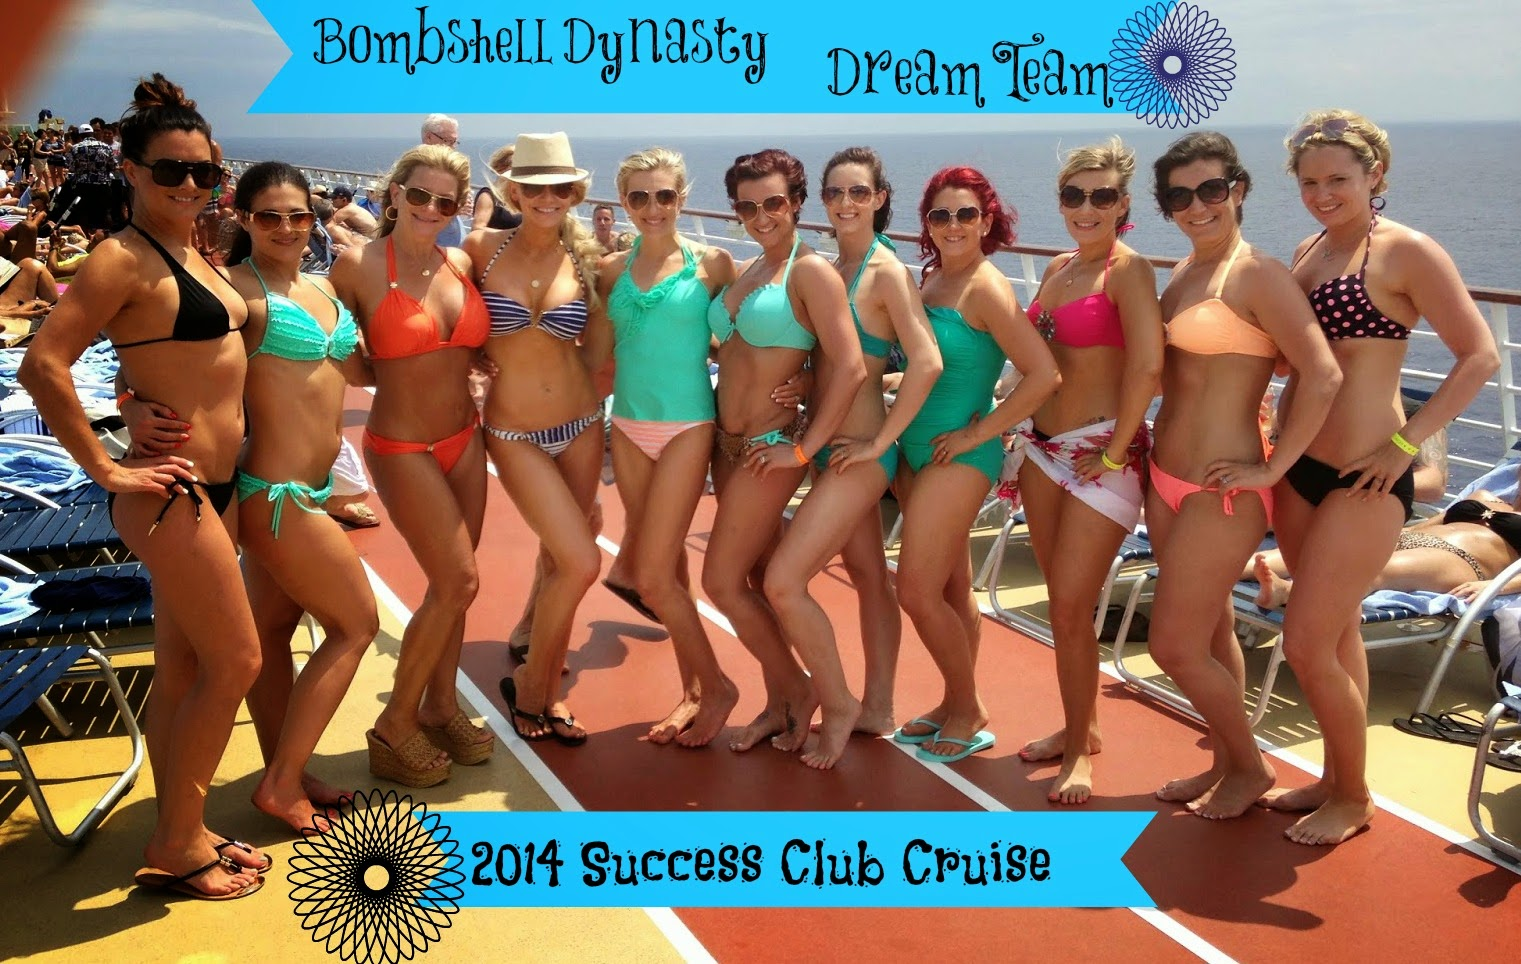 Deidra Penrose, 6 star diamond beach body coach, living the dream, forever fit, health and fitness coach, team beach body, beach body success club cruise, top coach, elite beach body coach, fitness motivation, inspiration, job opportunity, weight loss, tony horton, autumn calabrese, 21 day fix, p90x3, shaun t, insanity, t25, top coach, bombshell dynasty, dream team